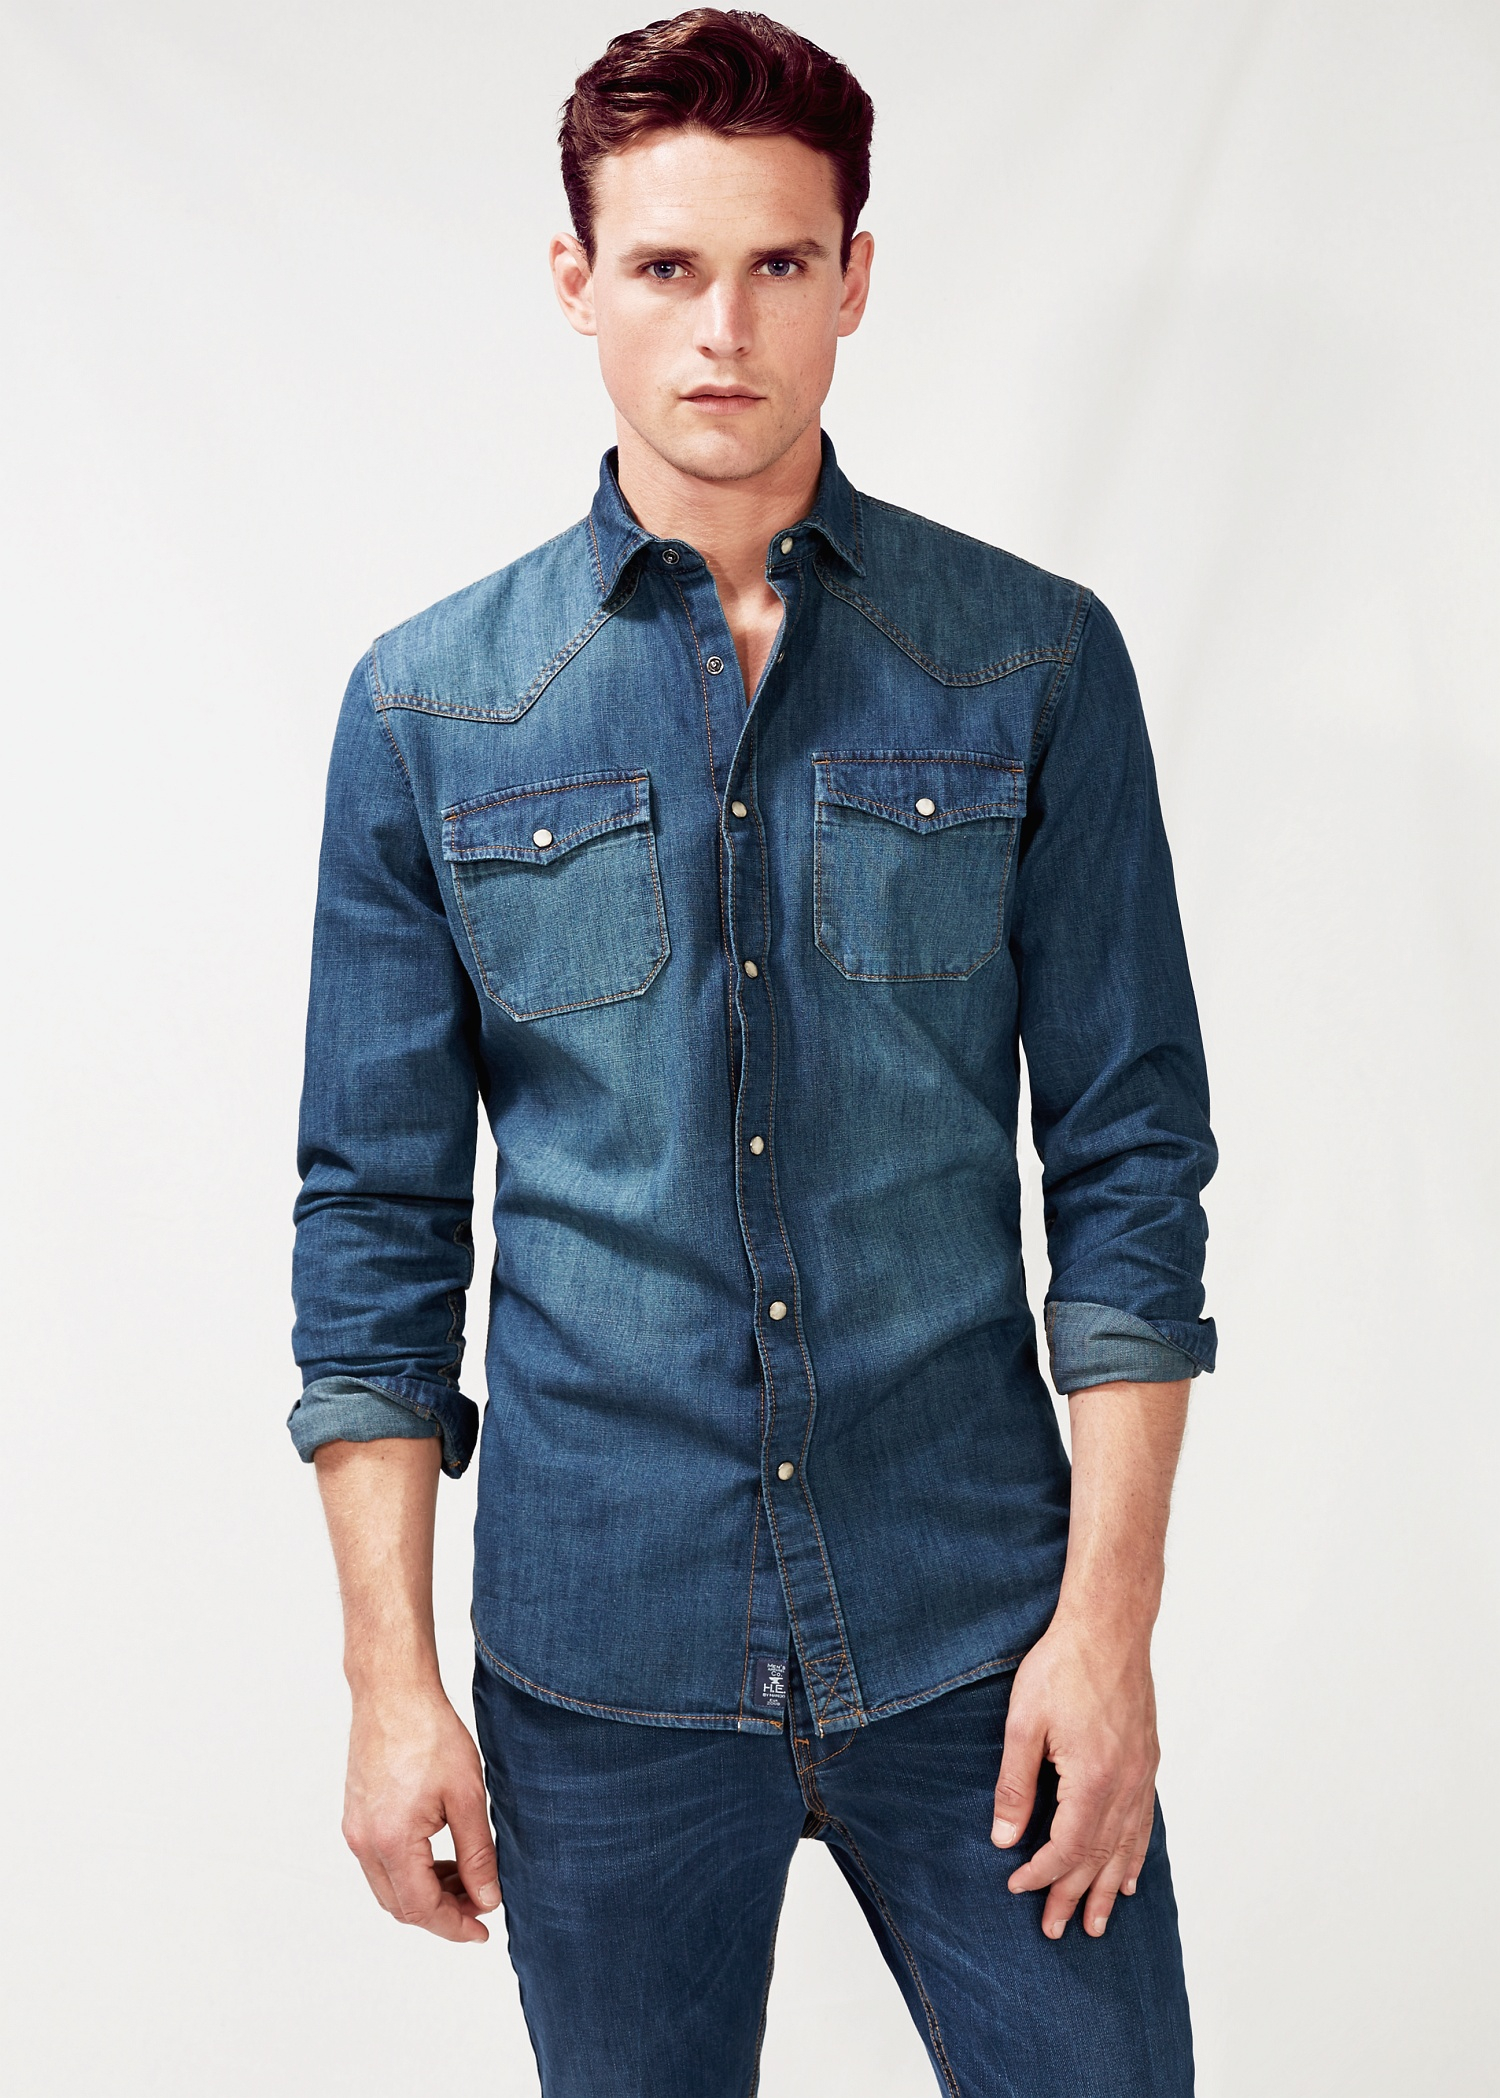 mens jeans -- Press Visit link above for more options. Find this Pin and more on Men Casual Fashion by Sinthea Parker. One can easily go and locate some quality and affordable t-shirts for boys in particular at local fashion stores.